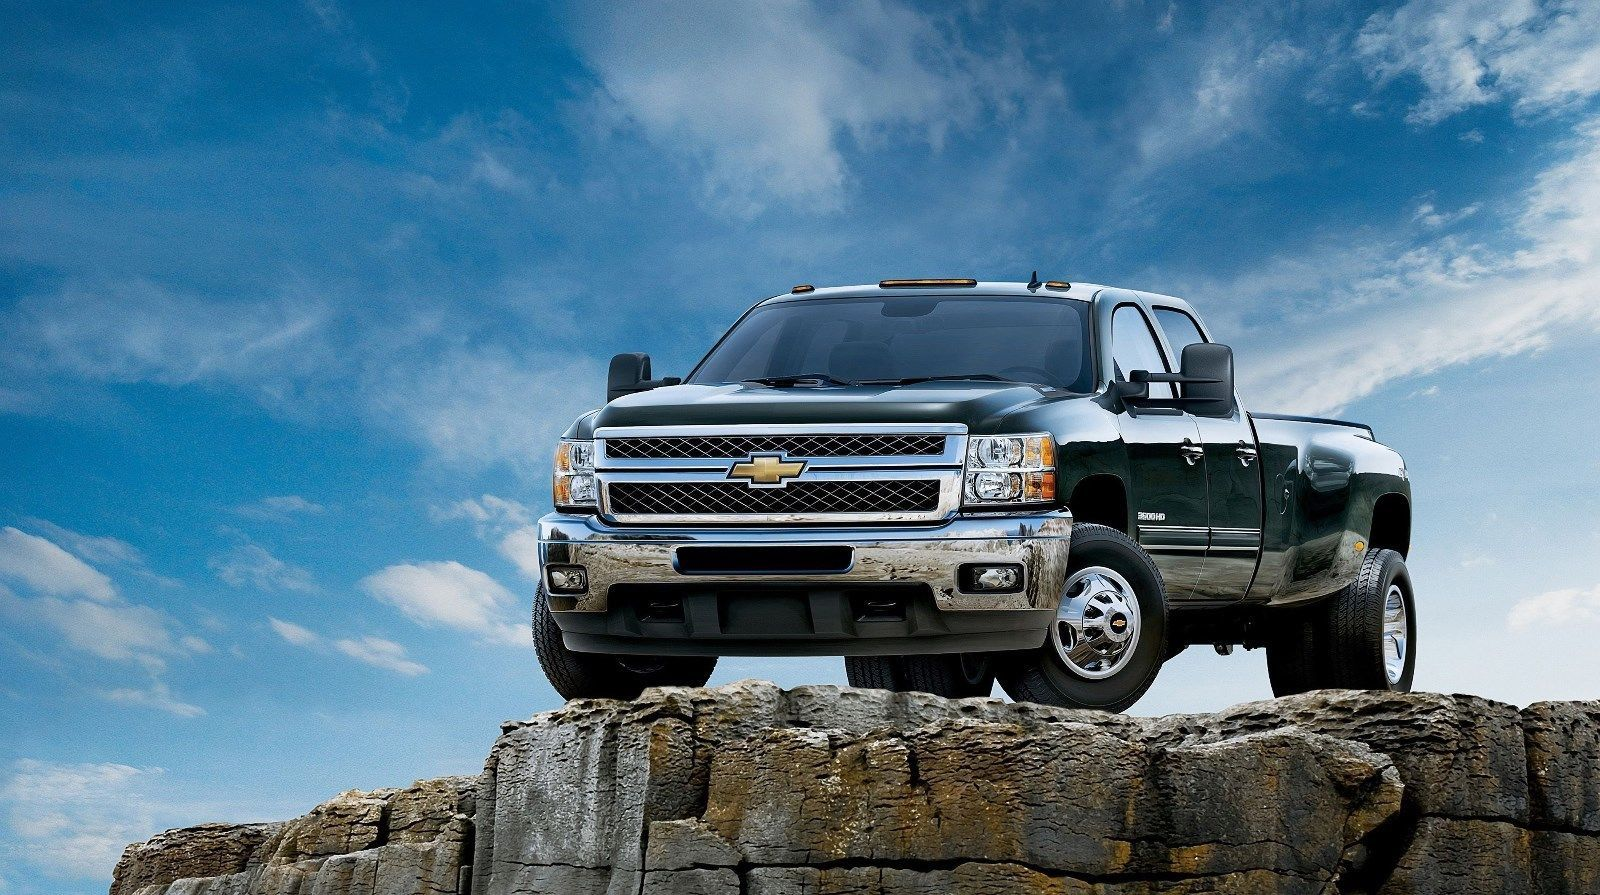 2020 Chevy Silverado 1500 Review, Pricing, and Specs